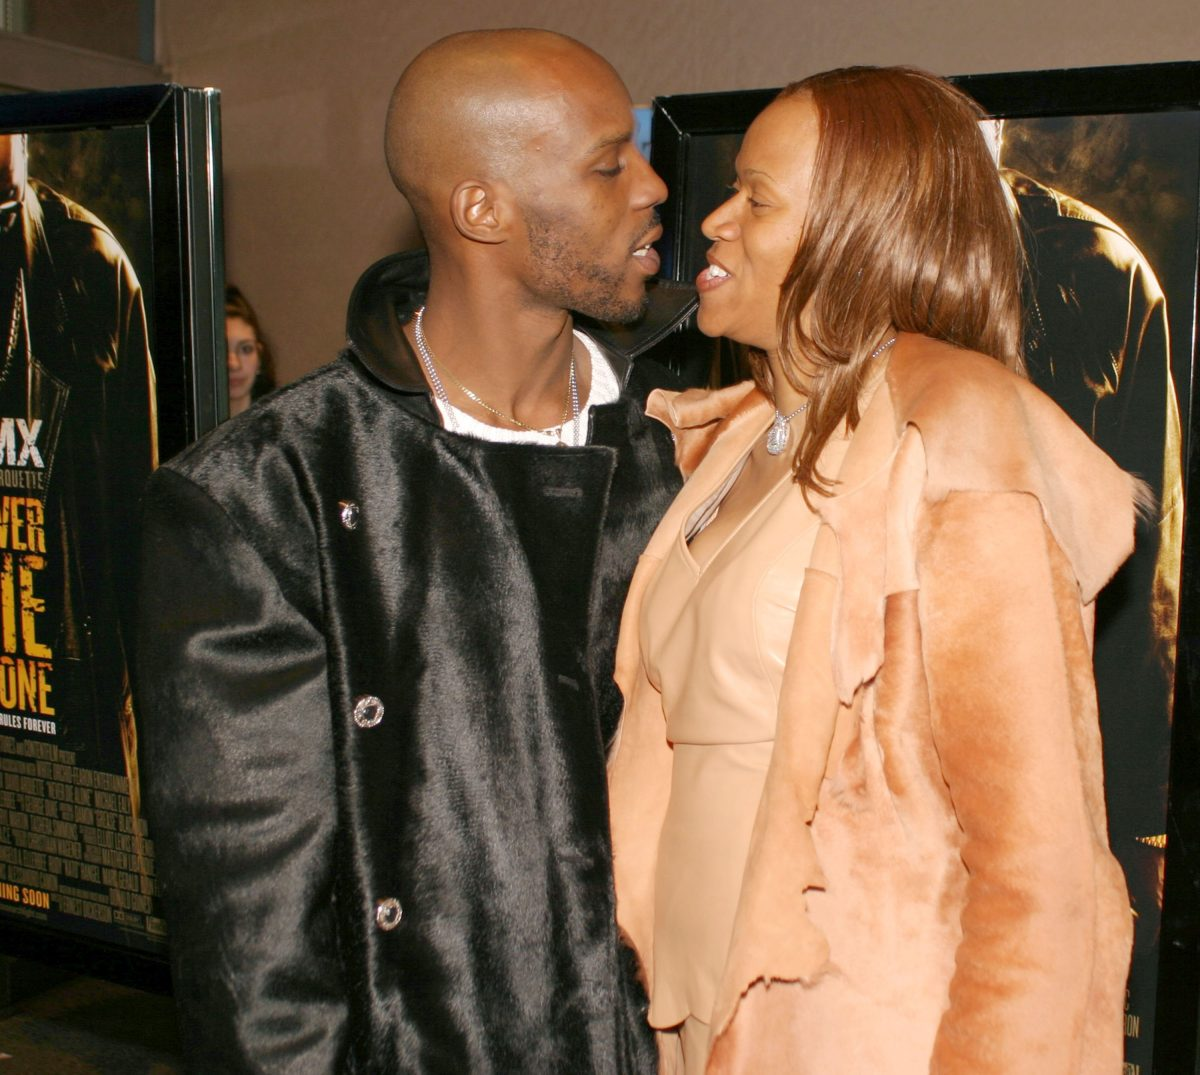 DMX and Tashera Simmons smiling at each other at an event.